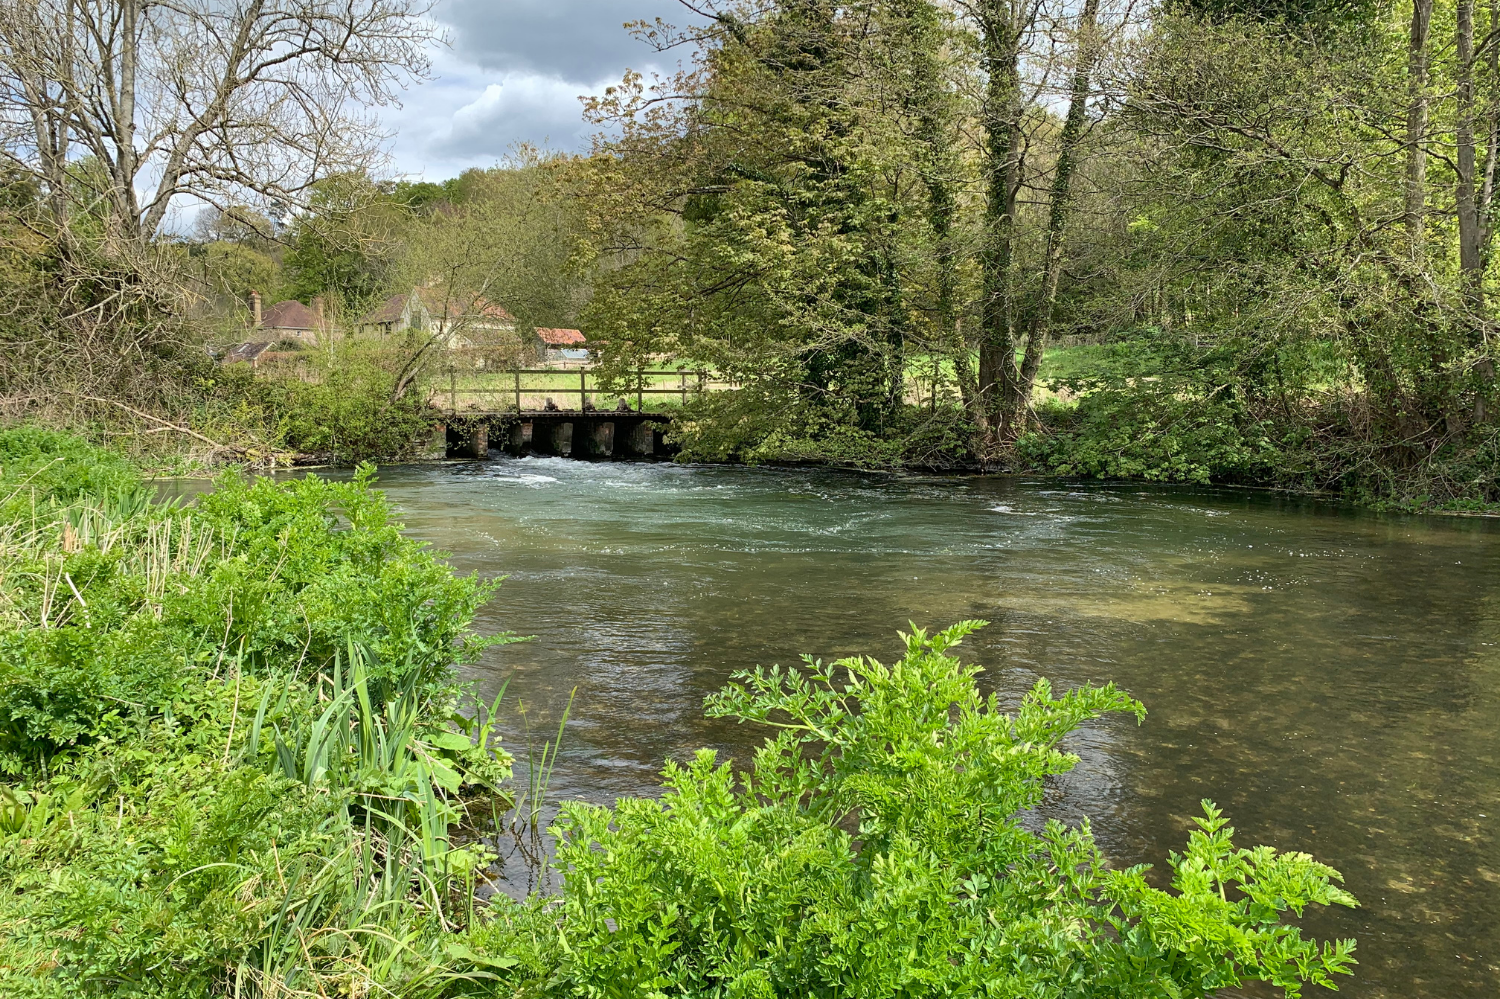 The River Avon. Photo credit: Salisbury and District Angling Club